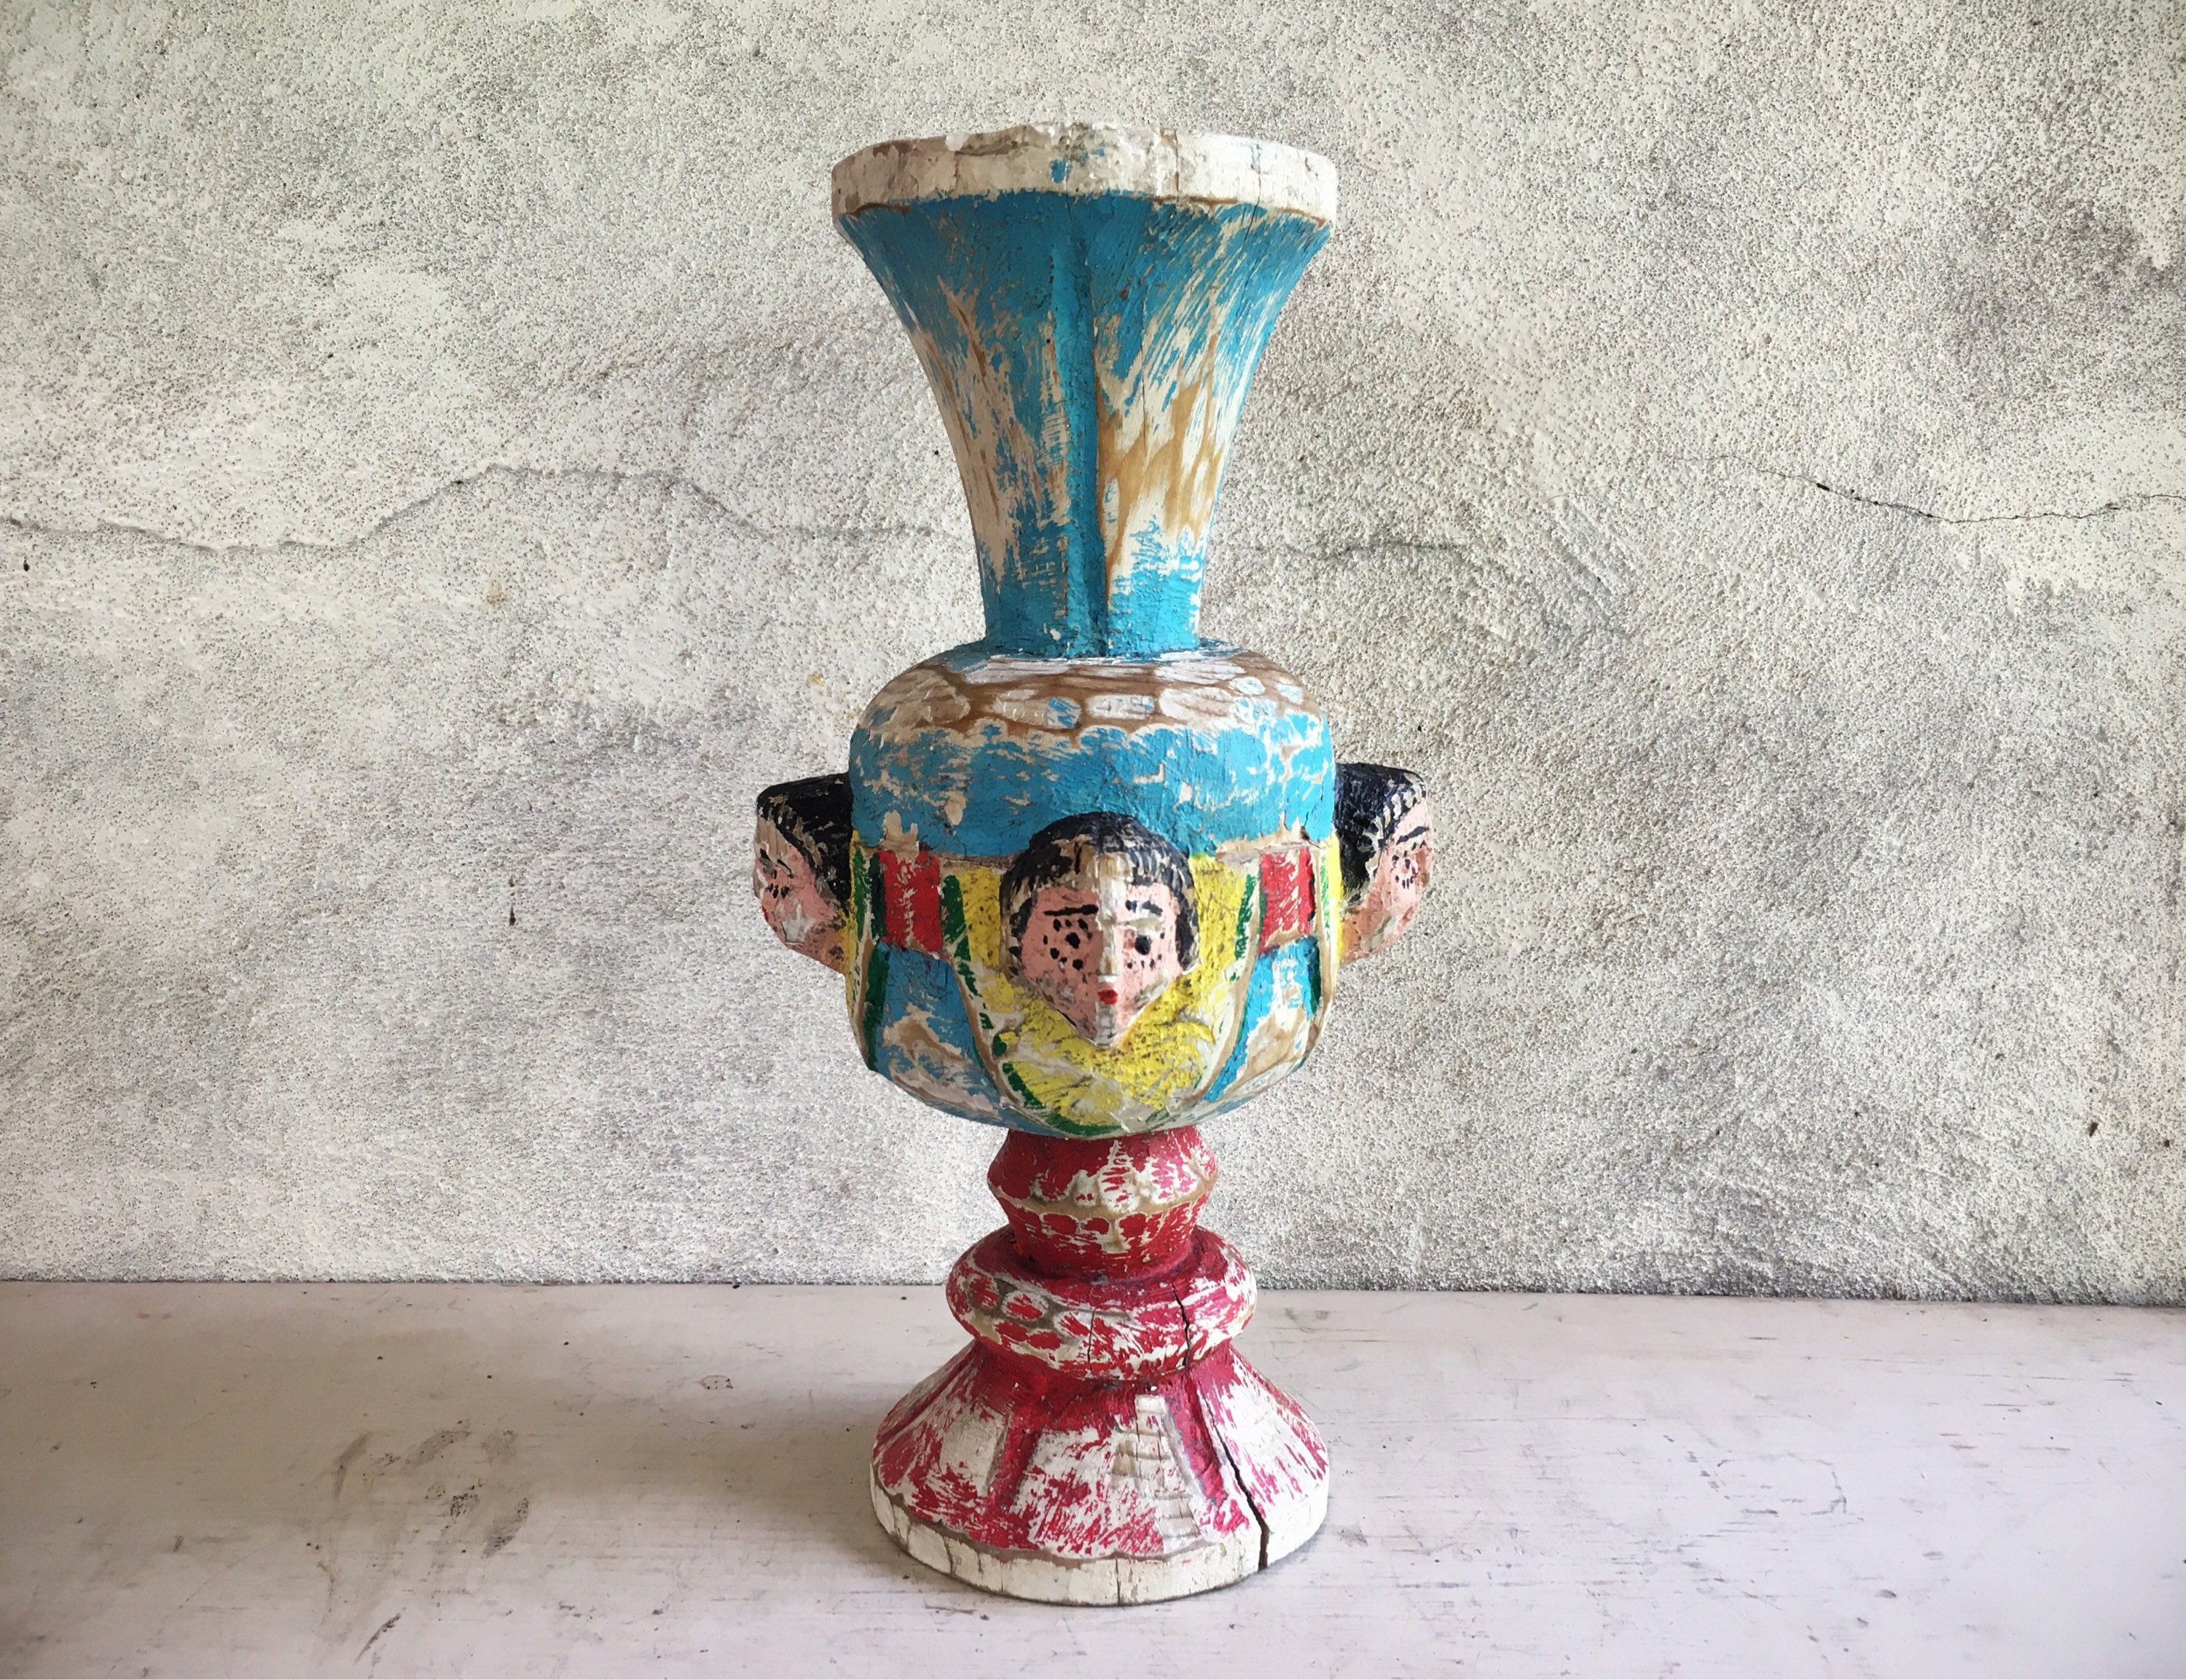 Mexican Talavera Vases Of Antique Angel Carved Wood Pillar Candle Holder Rustic Mexican Decor Pertaining to Antique Angel Carved Wood Pillar Candle Holder Rustic Mexican Decor Architectural Spanish Colonial